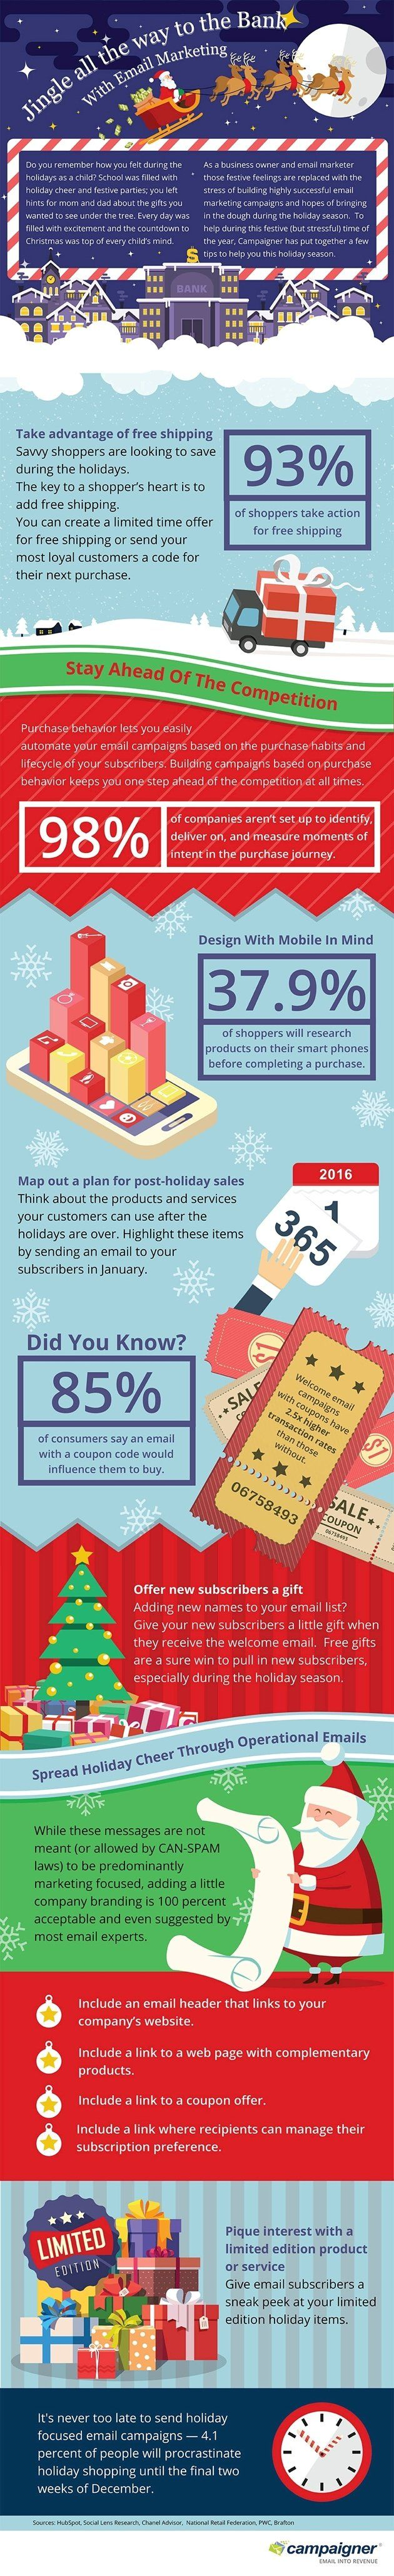 Email Marketing - Holiday Email Marketing: Jingle All the Way to the Bank [Infographic] : MarketingProfs Article